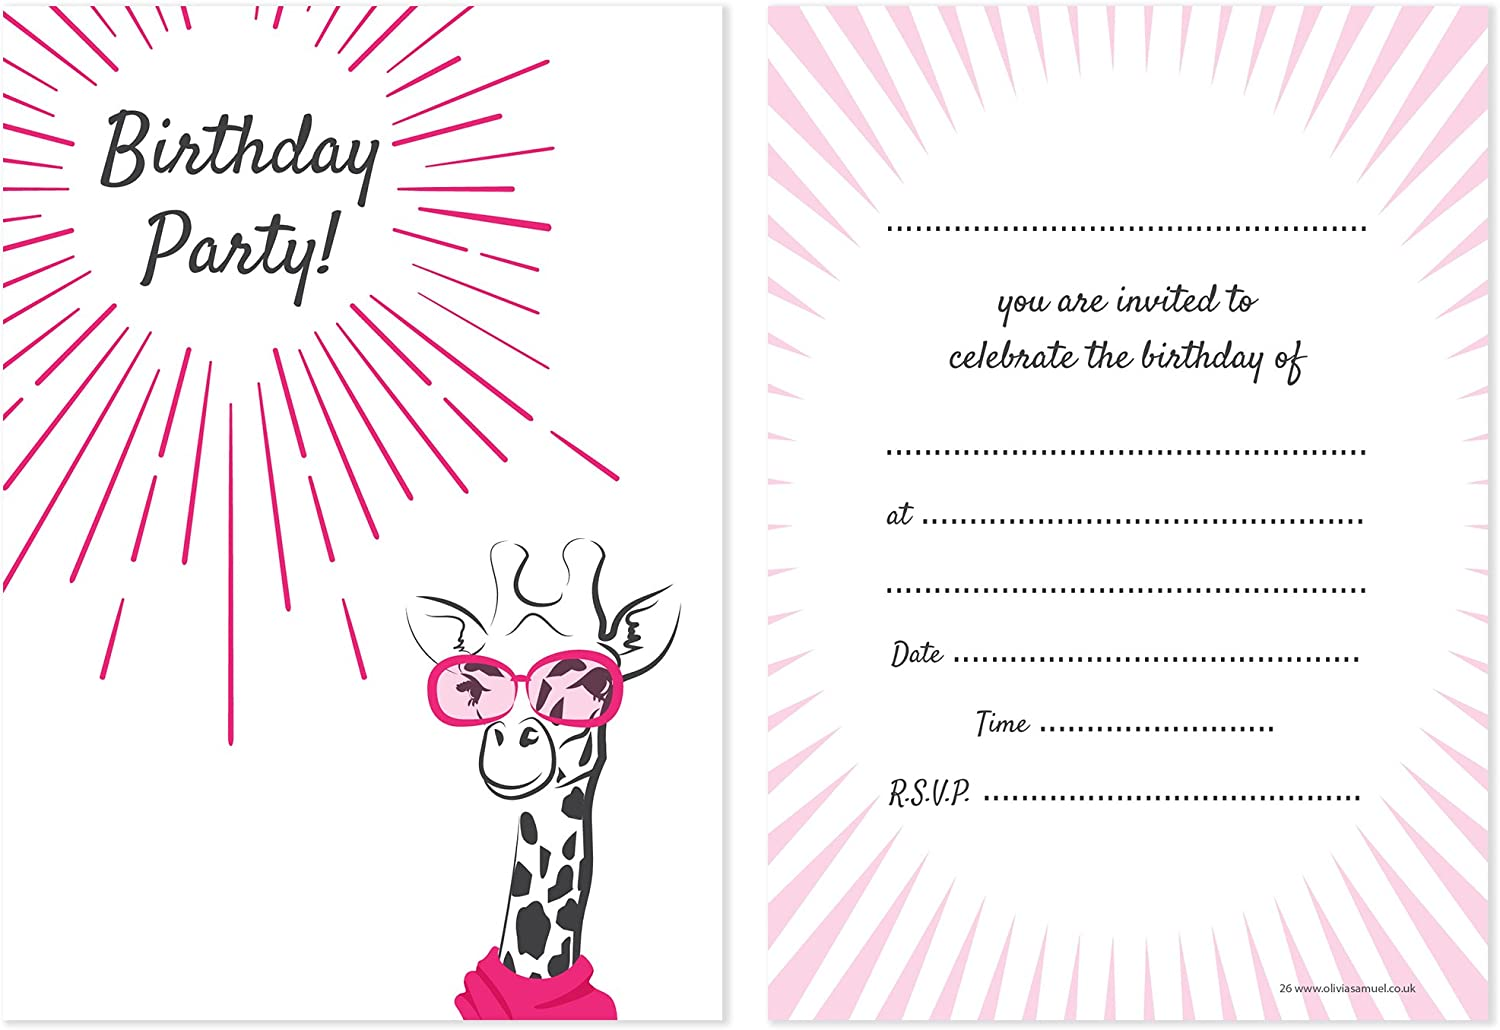 Pack of 10 Teenager Birthday Party Invitations A6 Postcard Size with envelopes Olivia Samuel Cool Giraffe Teen Birthday Invites